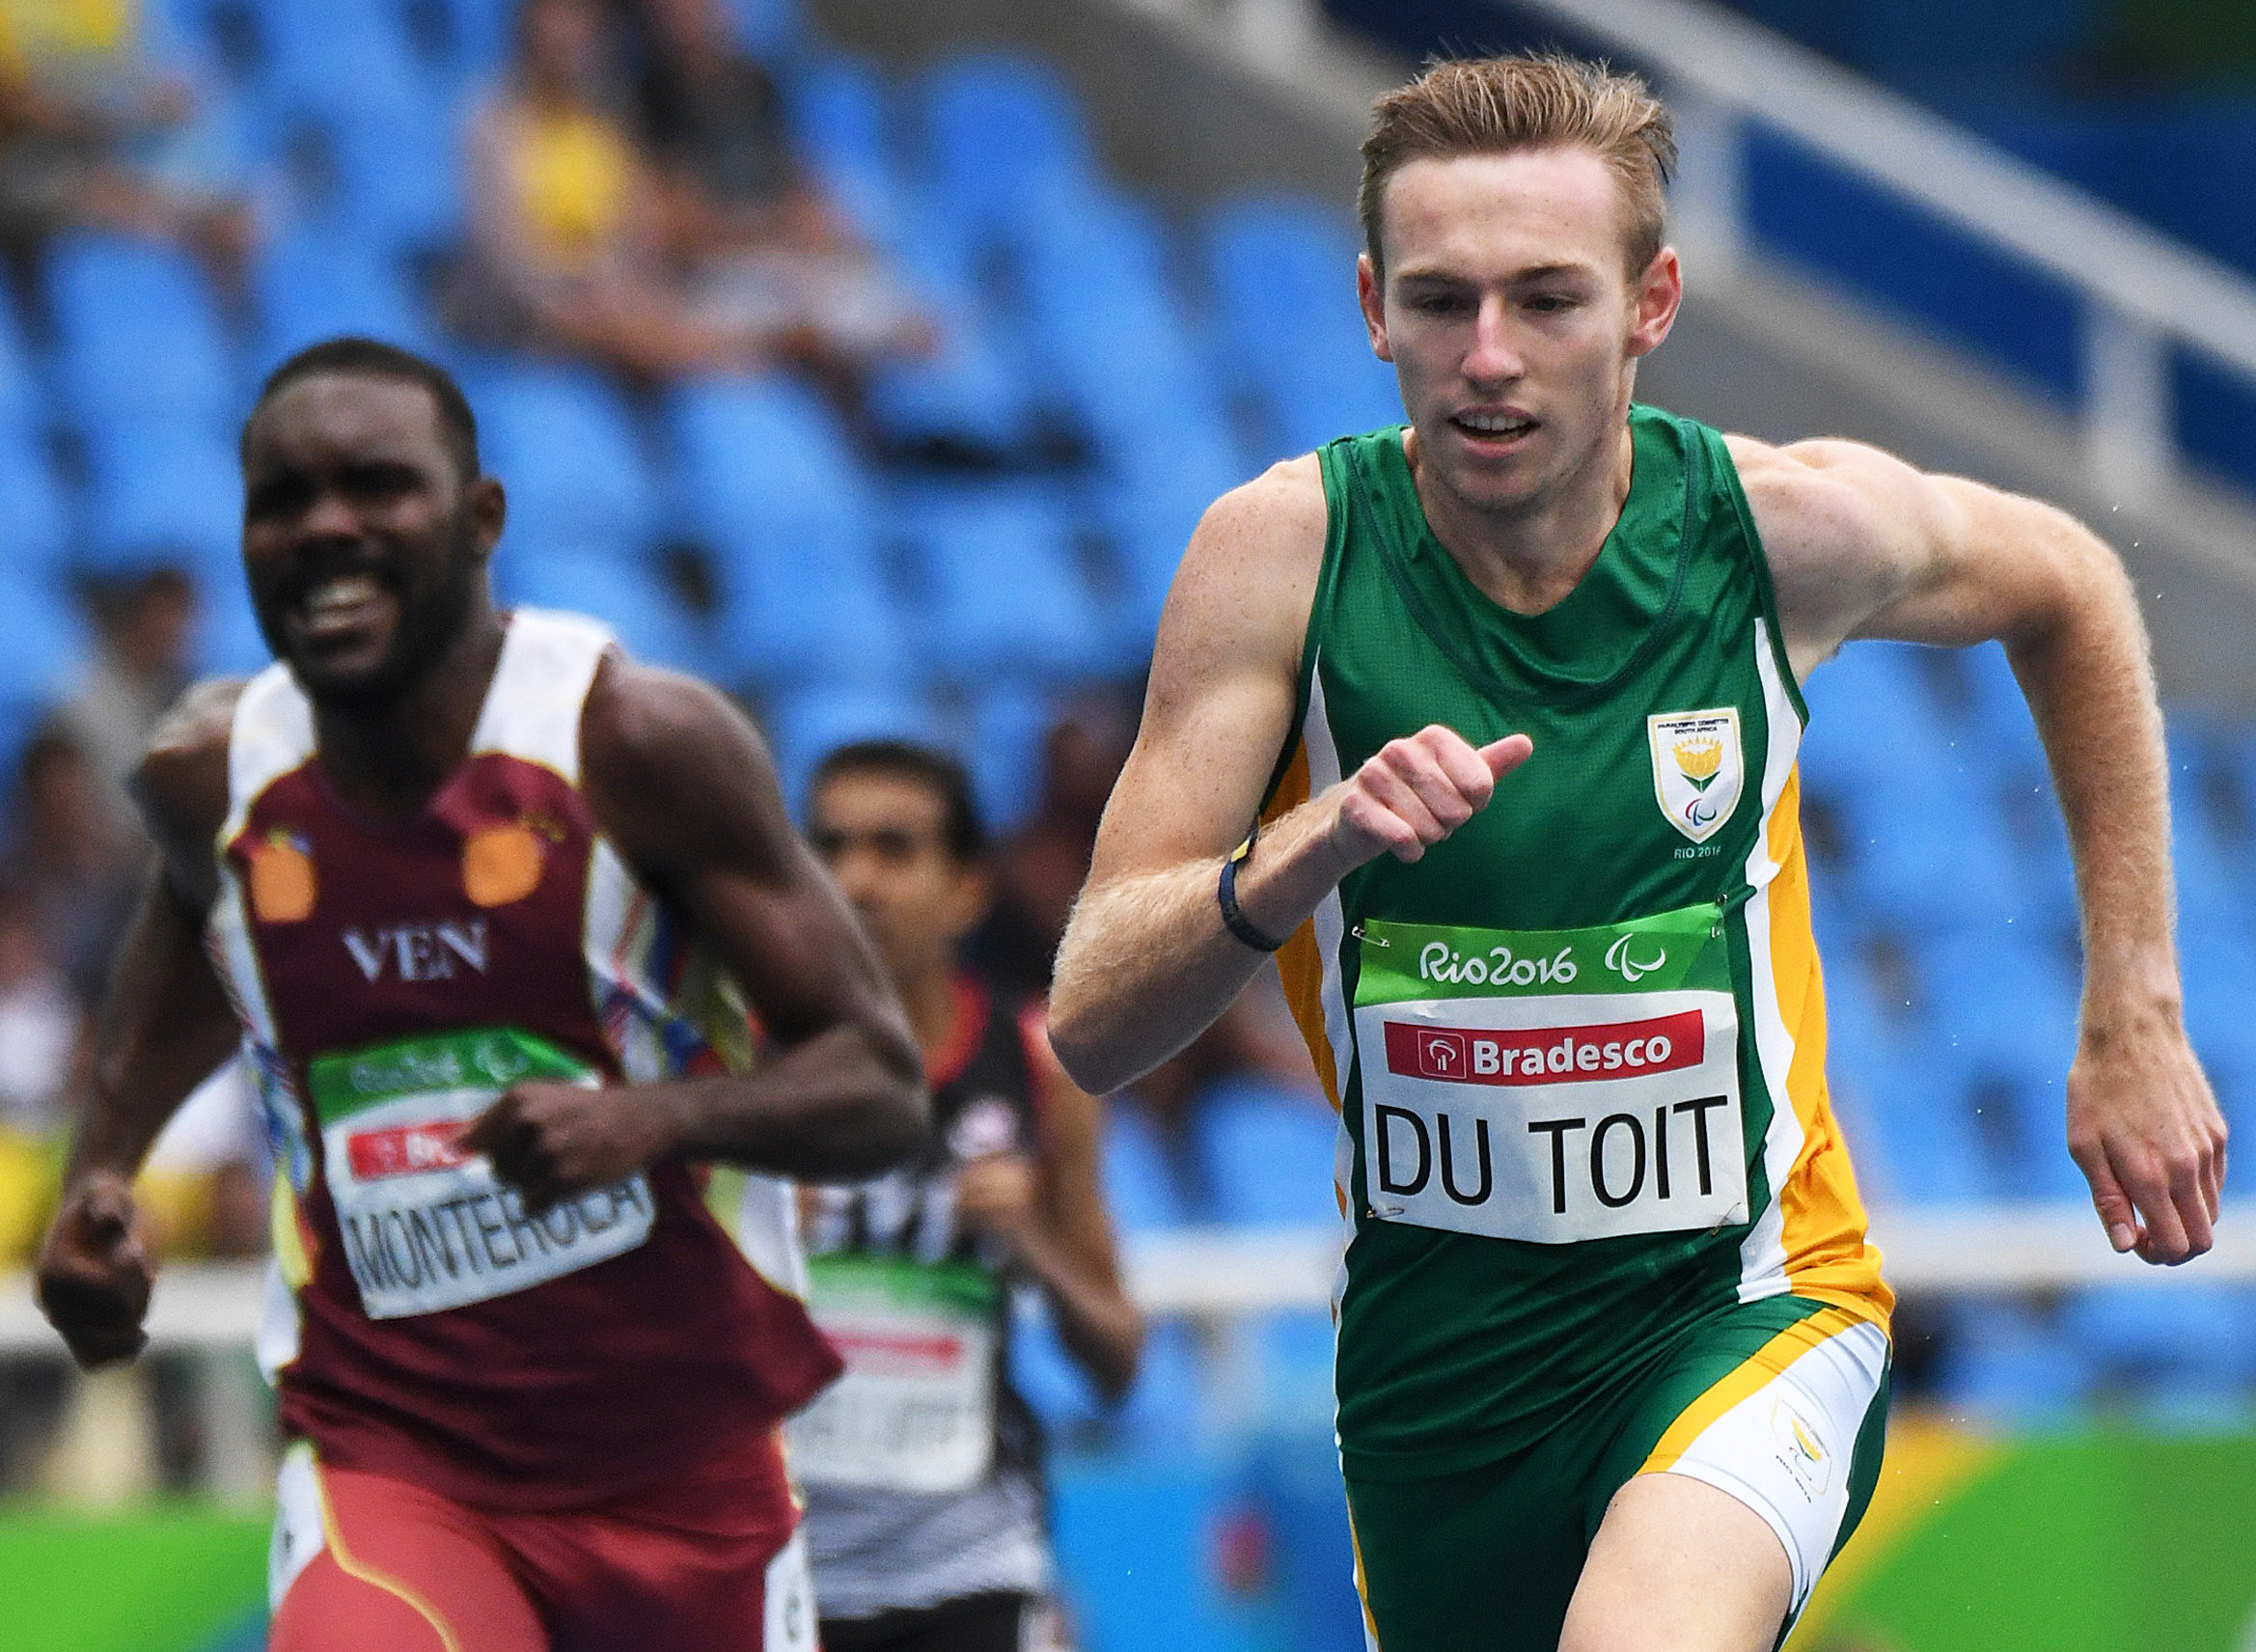 It's Du Toit at the double as he gets 400m gold in Rio!